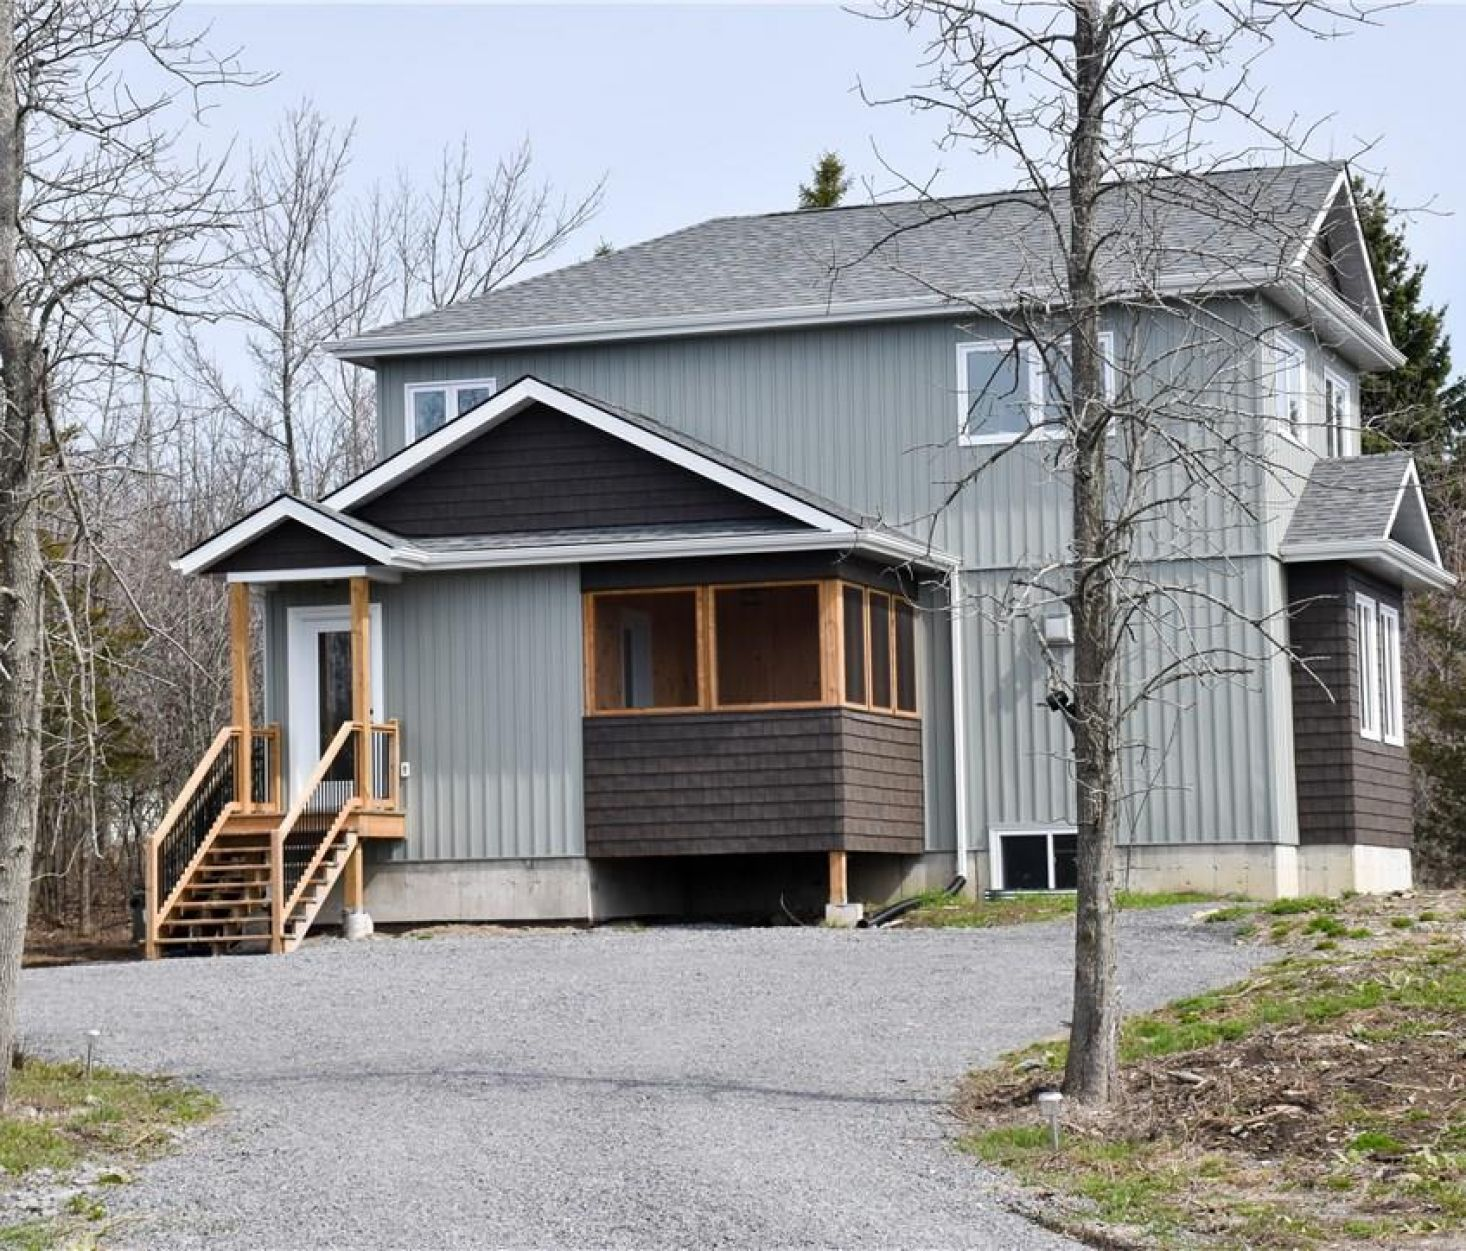 3949 COUNTY ROAD 10 ROAD, Prince Edward County****SOLD****